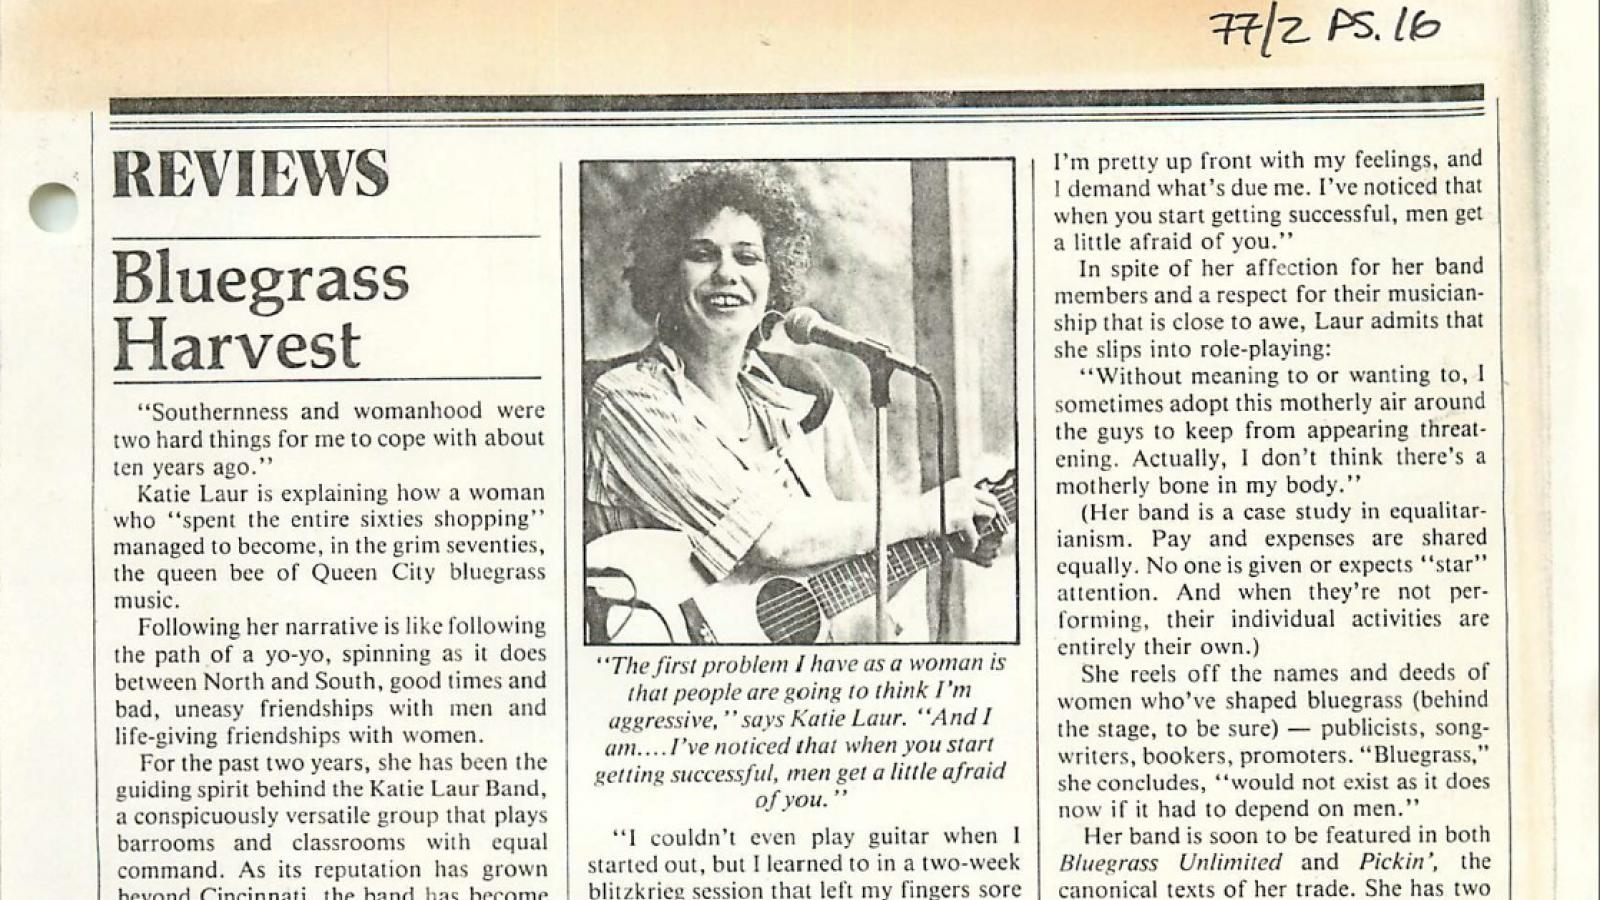 An article on Katie Laur, musician and fieldworker.